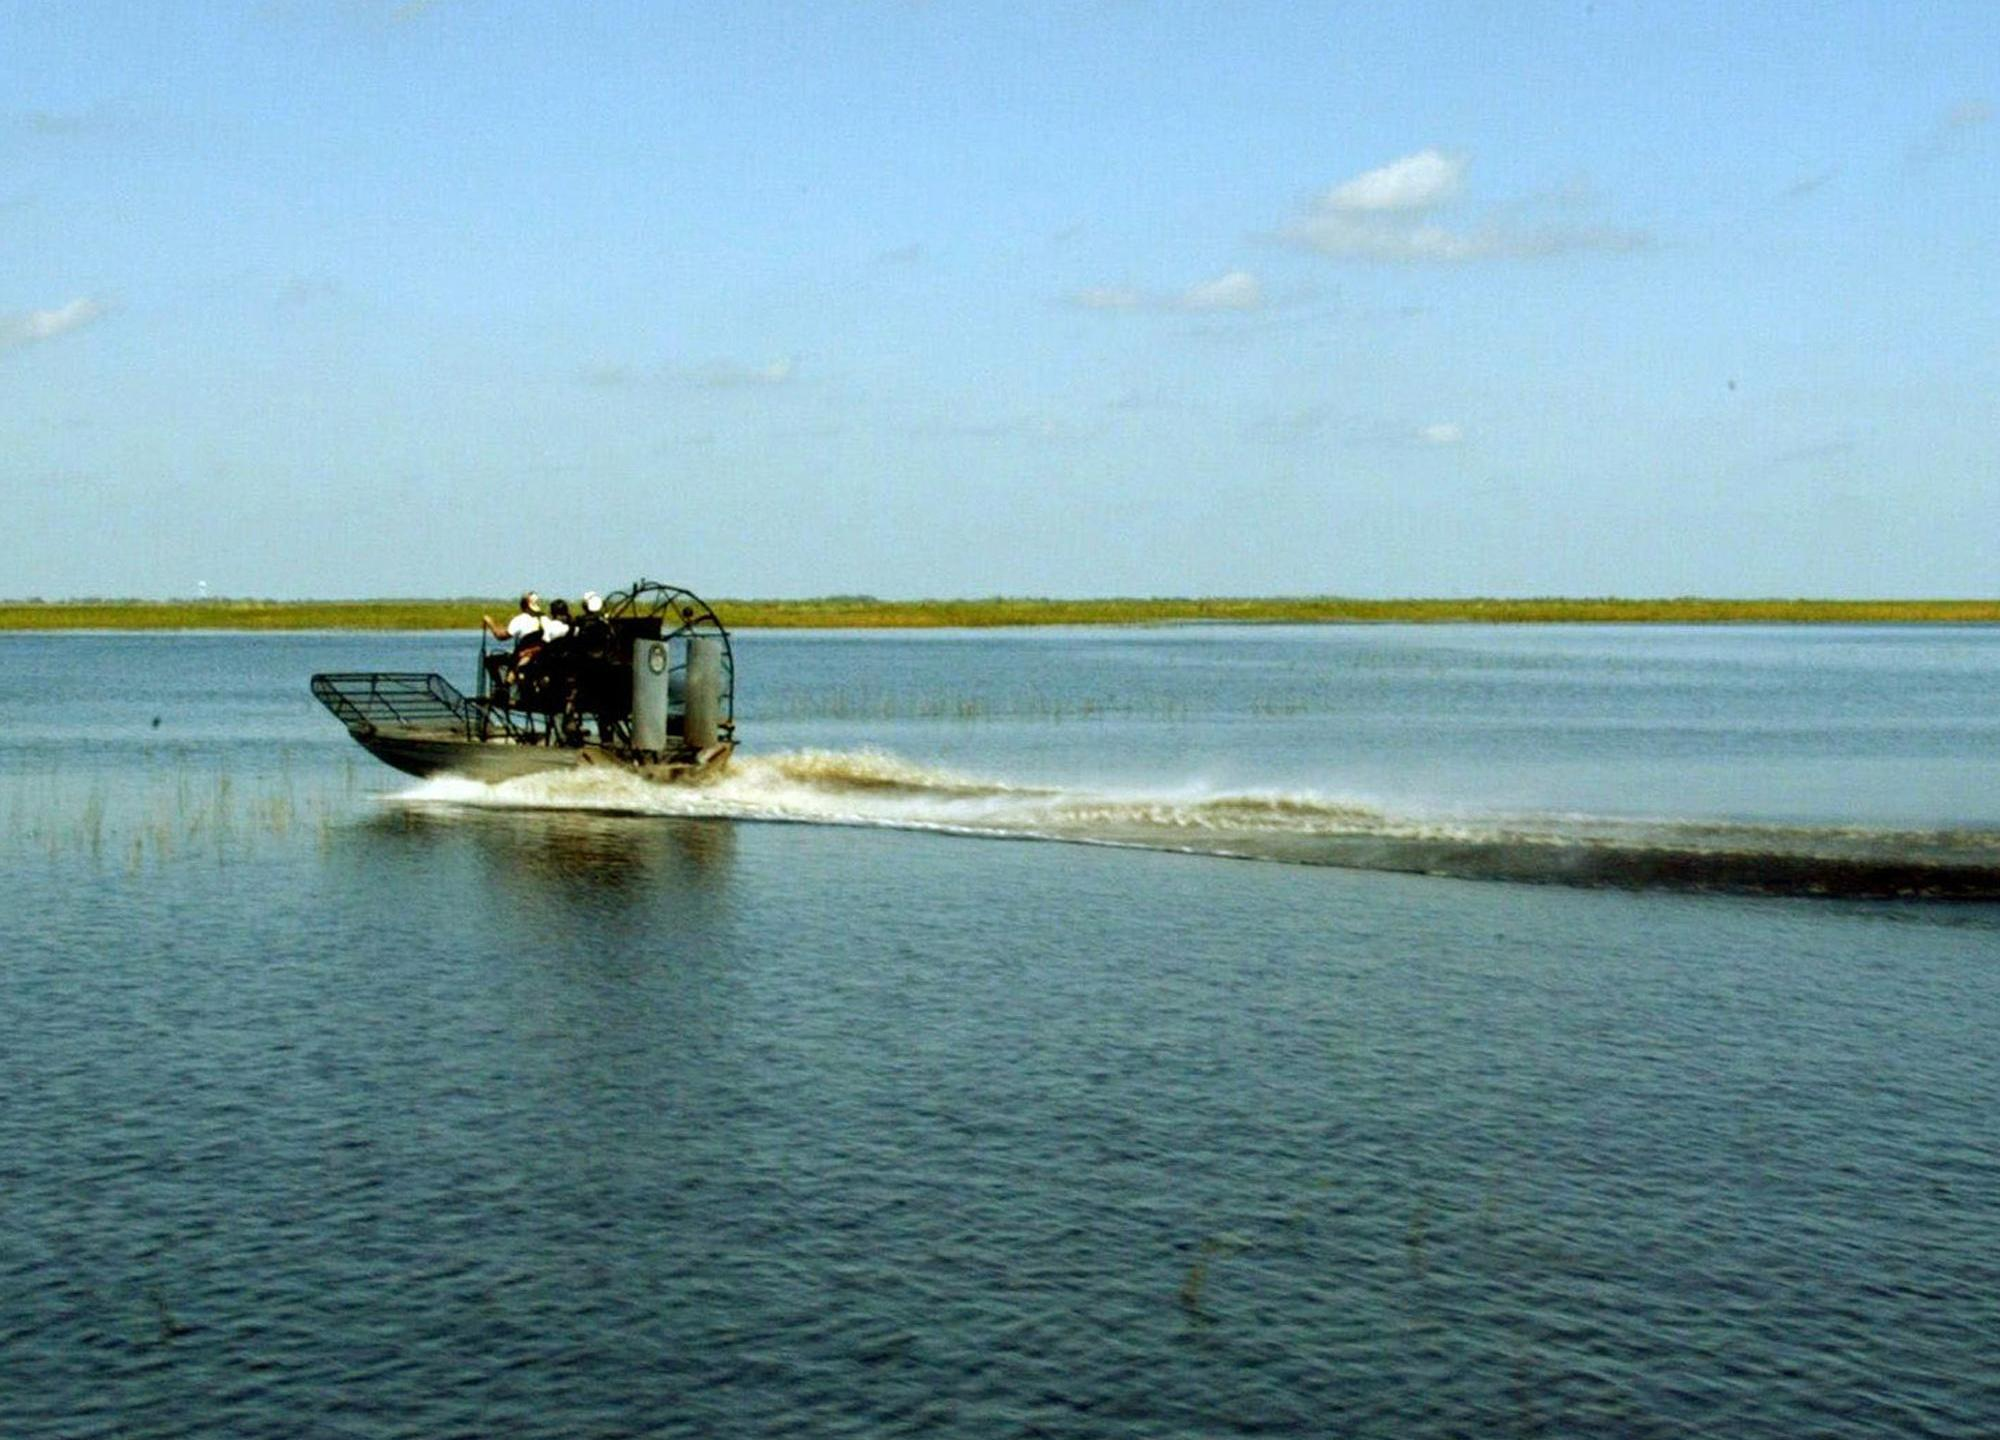 Airboat_389953